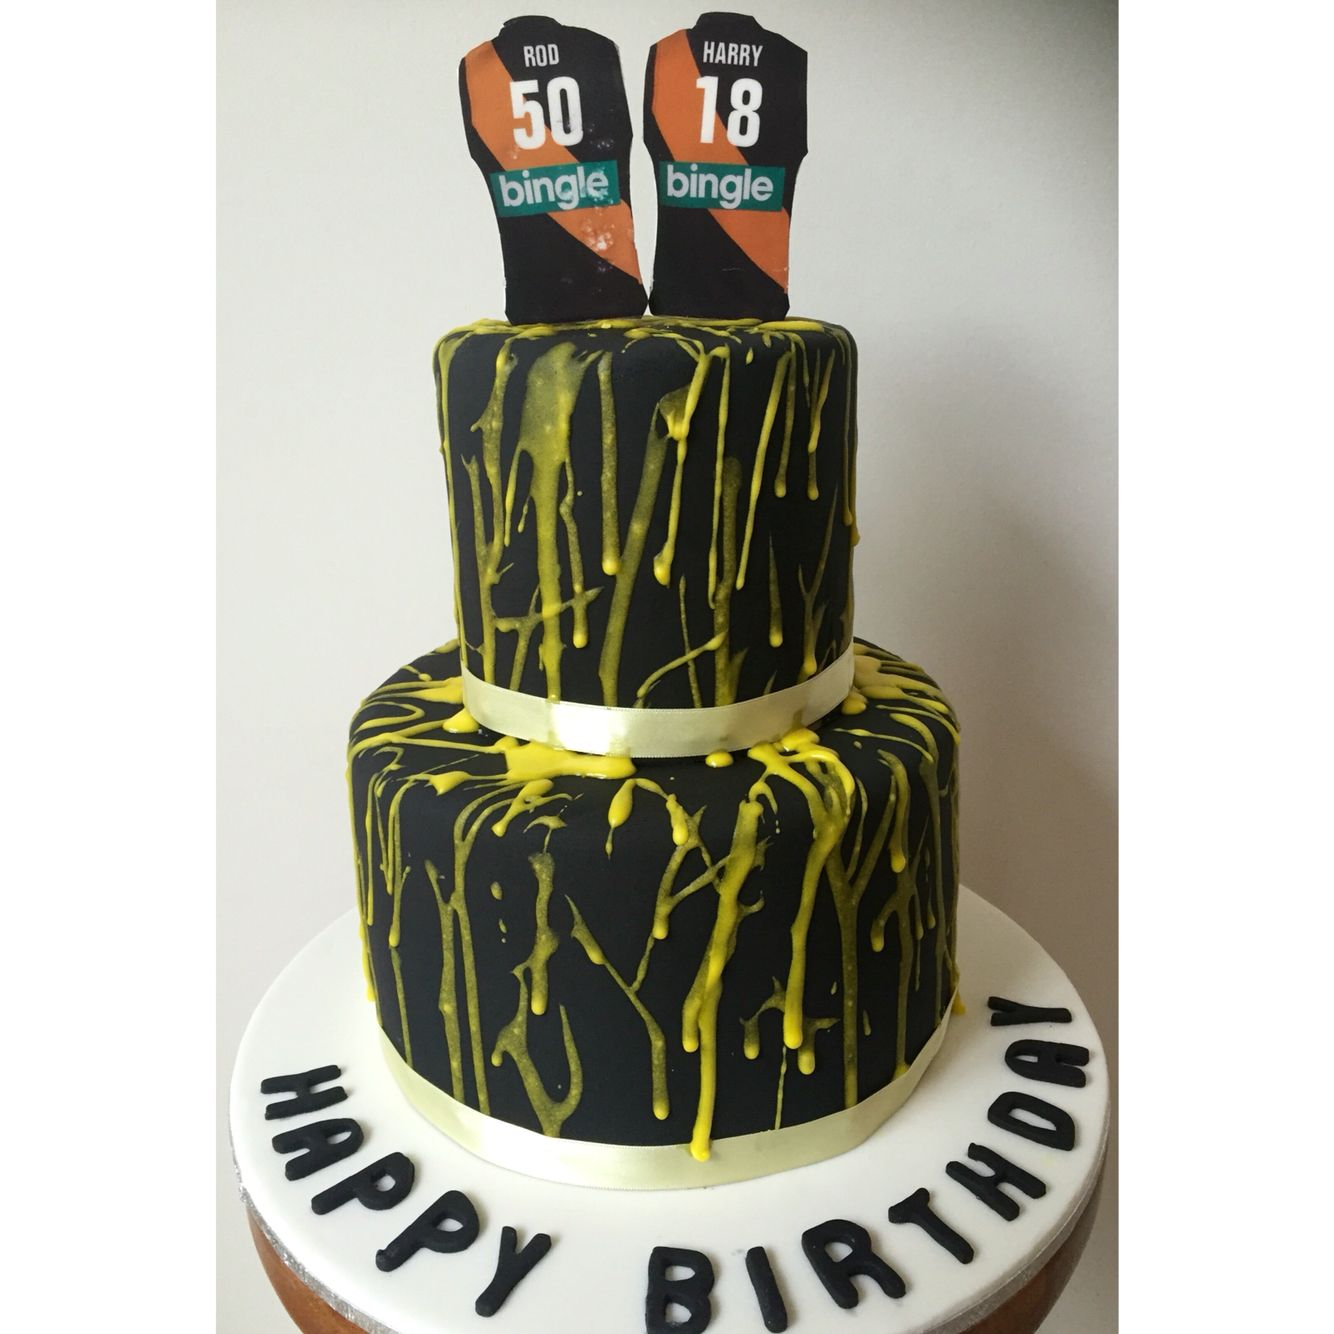 Richmond Afl Cake For A Joint Party Birthday Cake Fondant